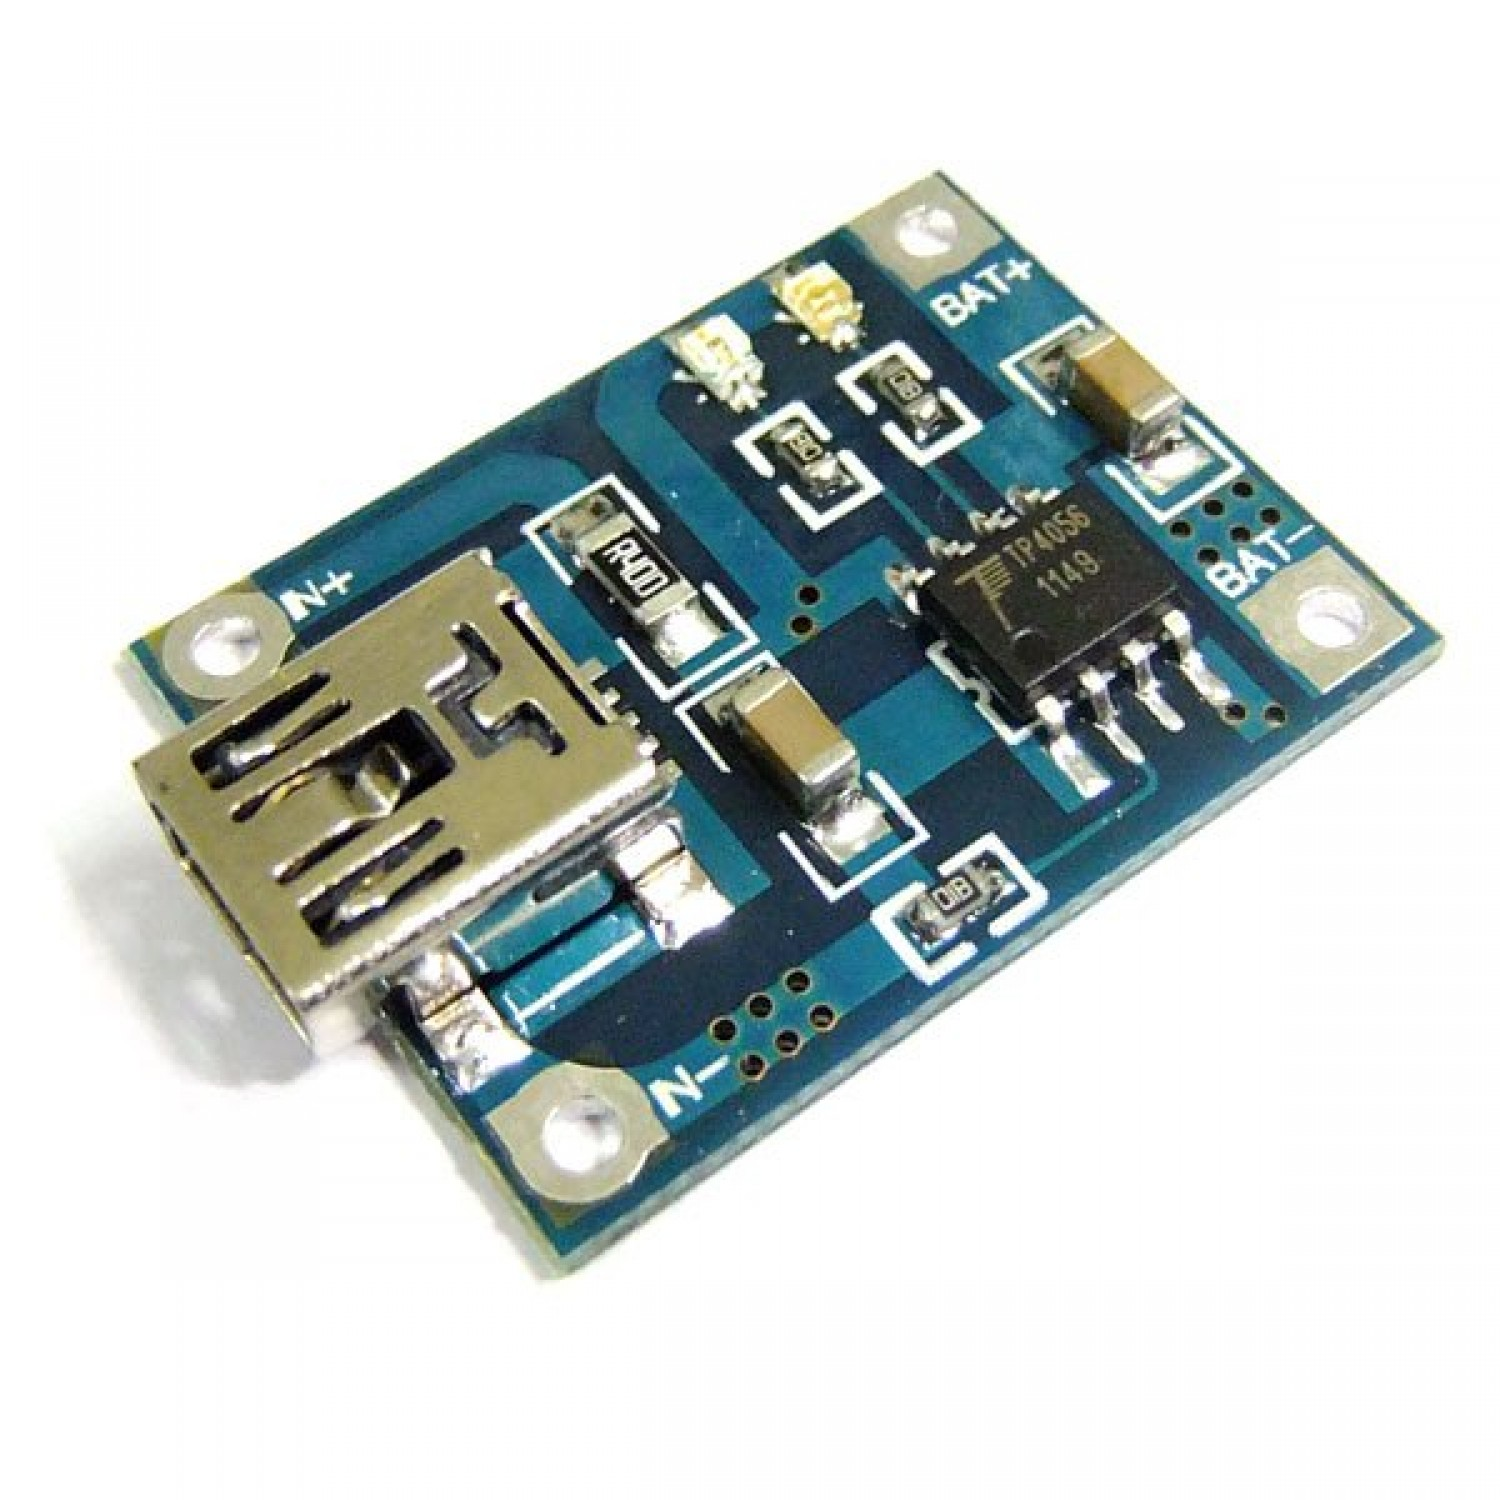 610196 32336532436 besides 5v Miniusb 1a Lithium Battery Charging Board 18650 Charger Module furthermore 272570928685 as well 161806312206 moreover 191981163834. on tp4056 micro usb 5v 1a lithium battery charger with